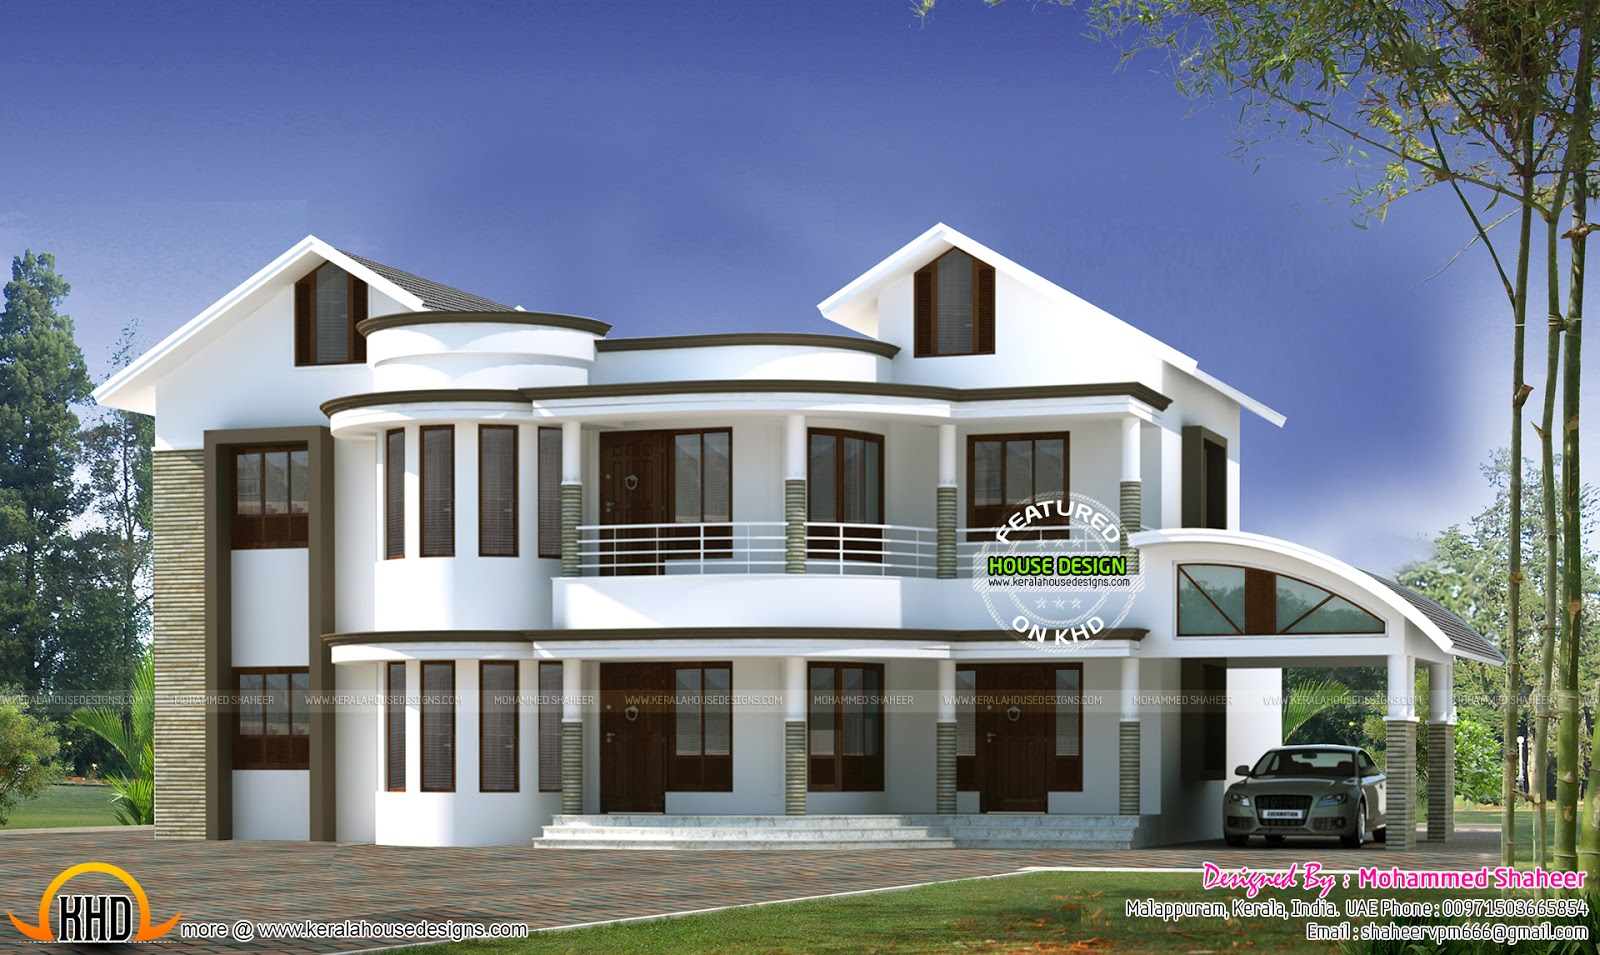 3000 sq ft mixed roof modern home kerala home design and for 3000 sq ft house plans kerala style